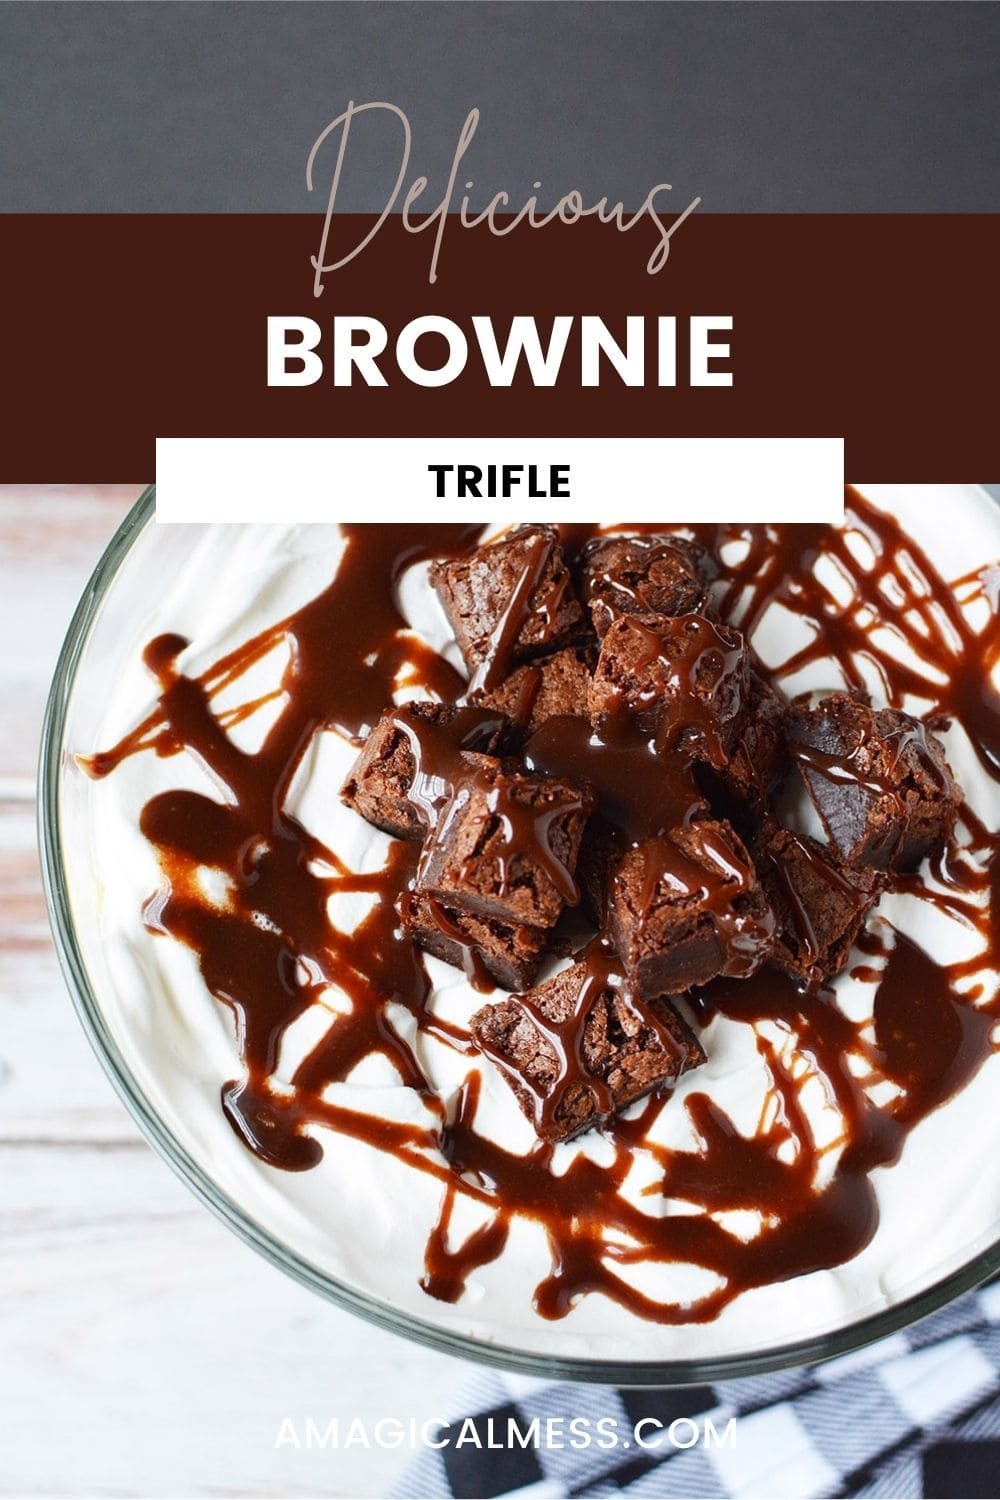 Brownie trifle with hot fudge drizzles